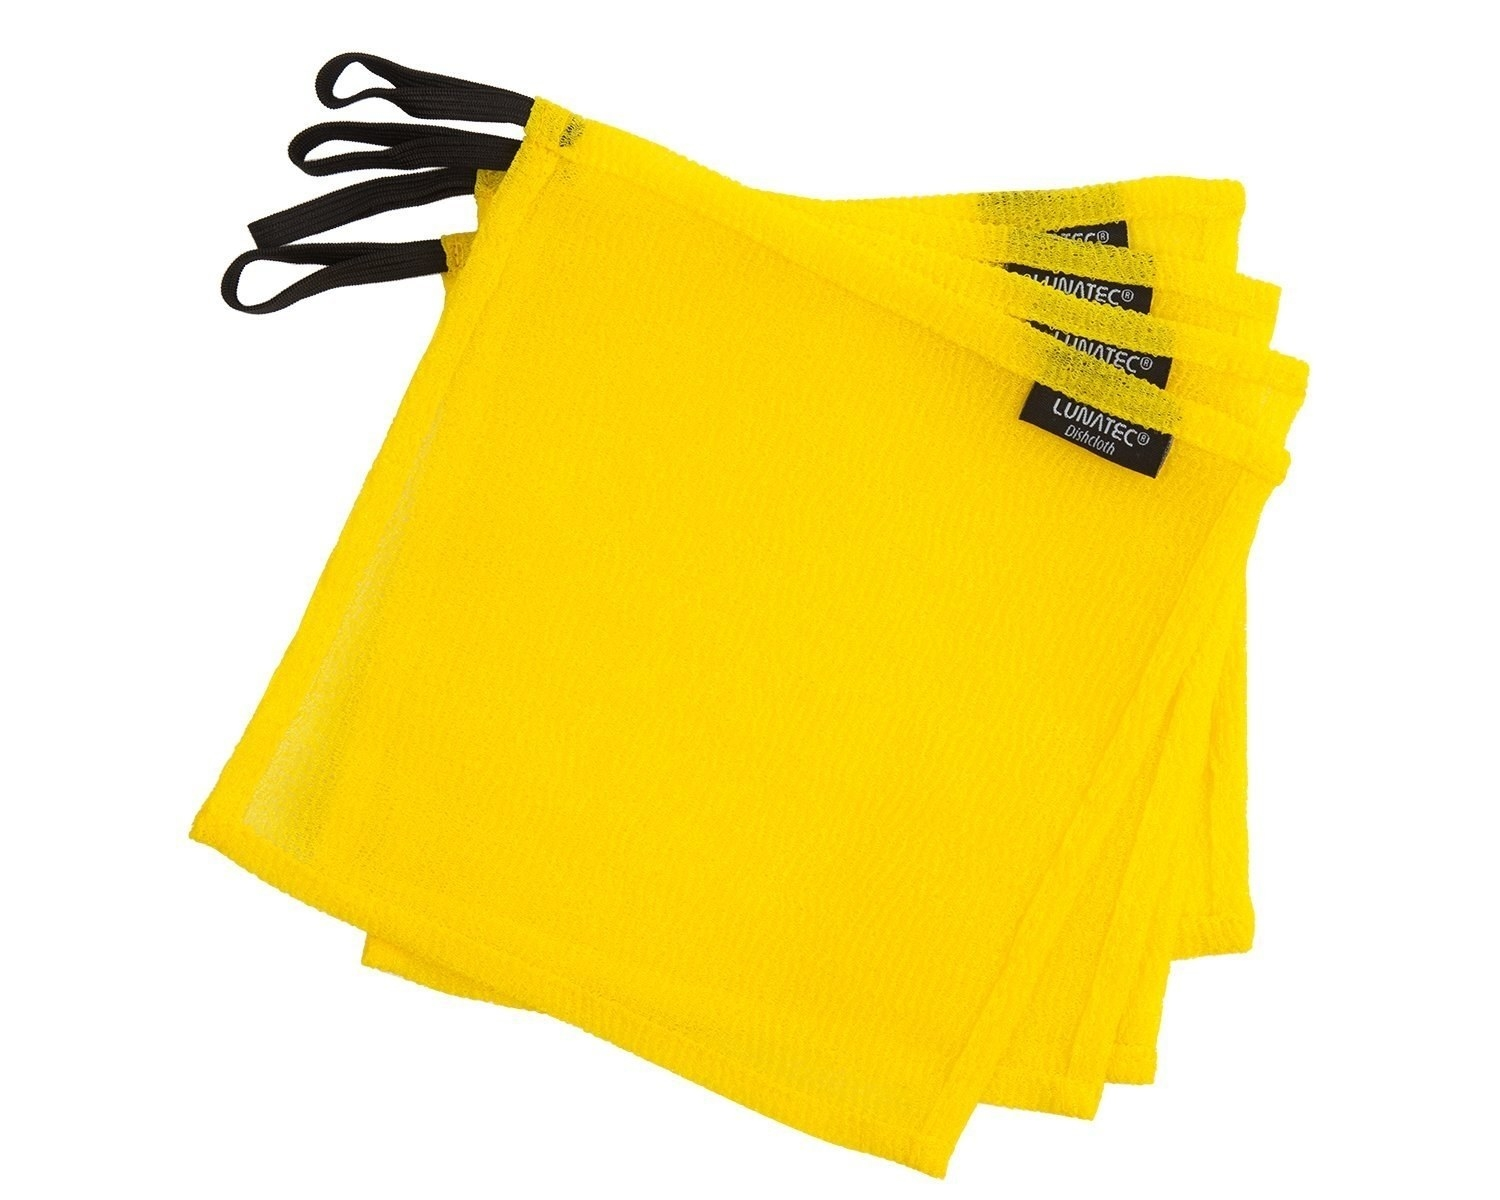 The cloths in yellow, with hanging loops